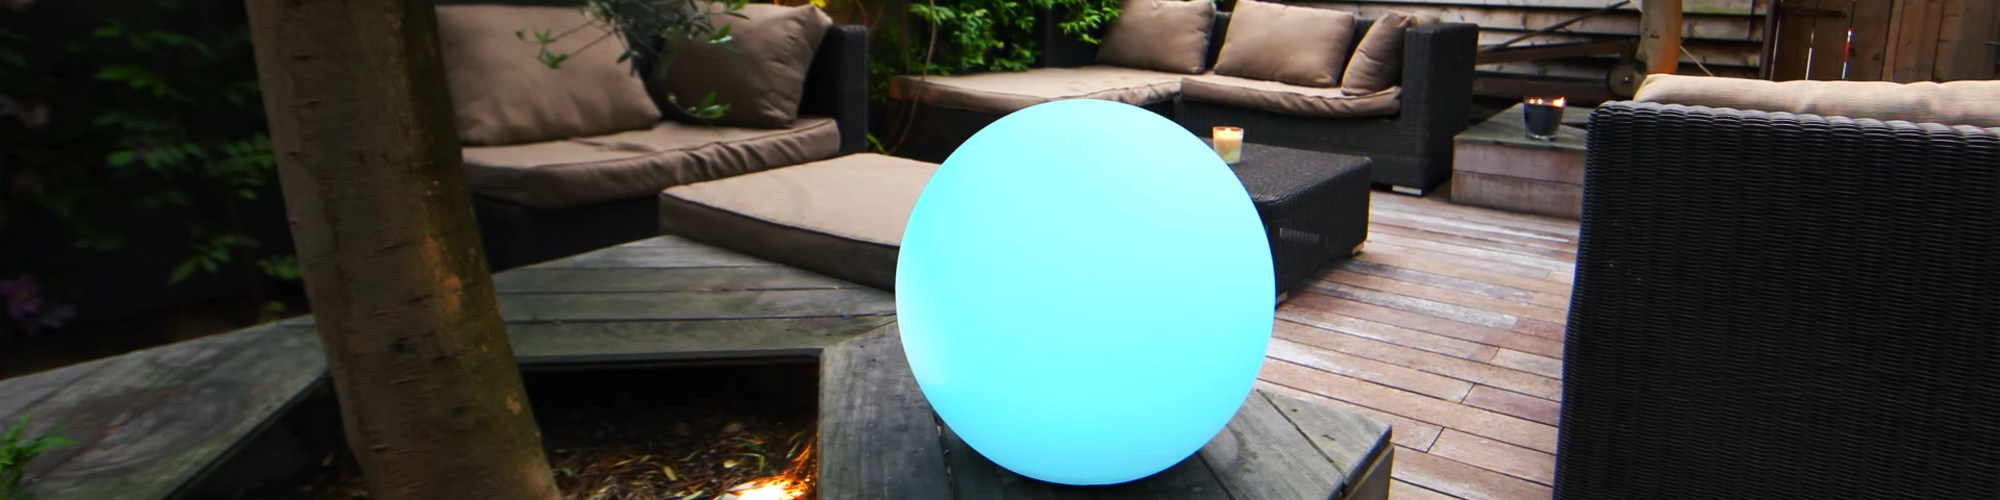 awox-smartlight-ambiance-sphere